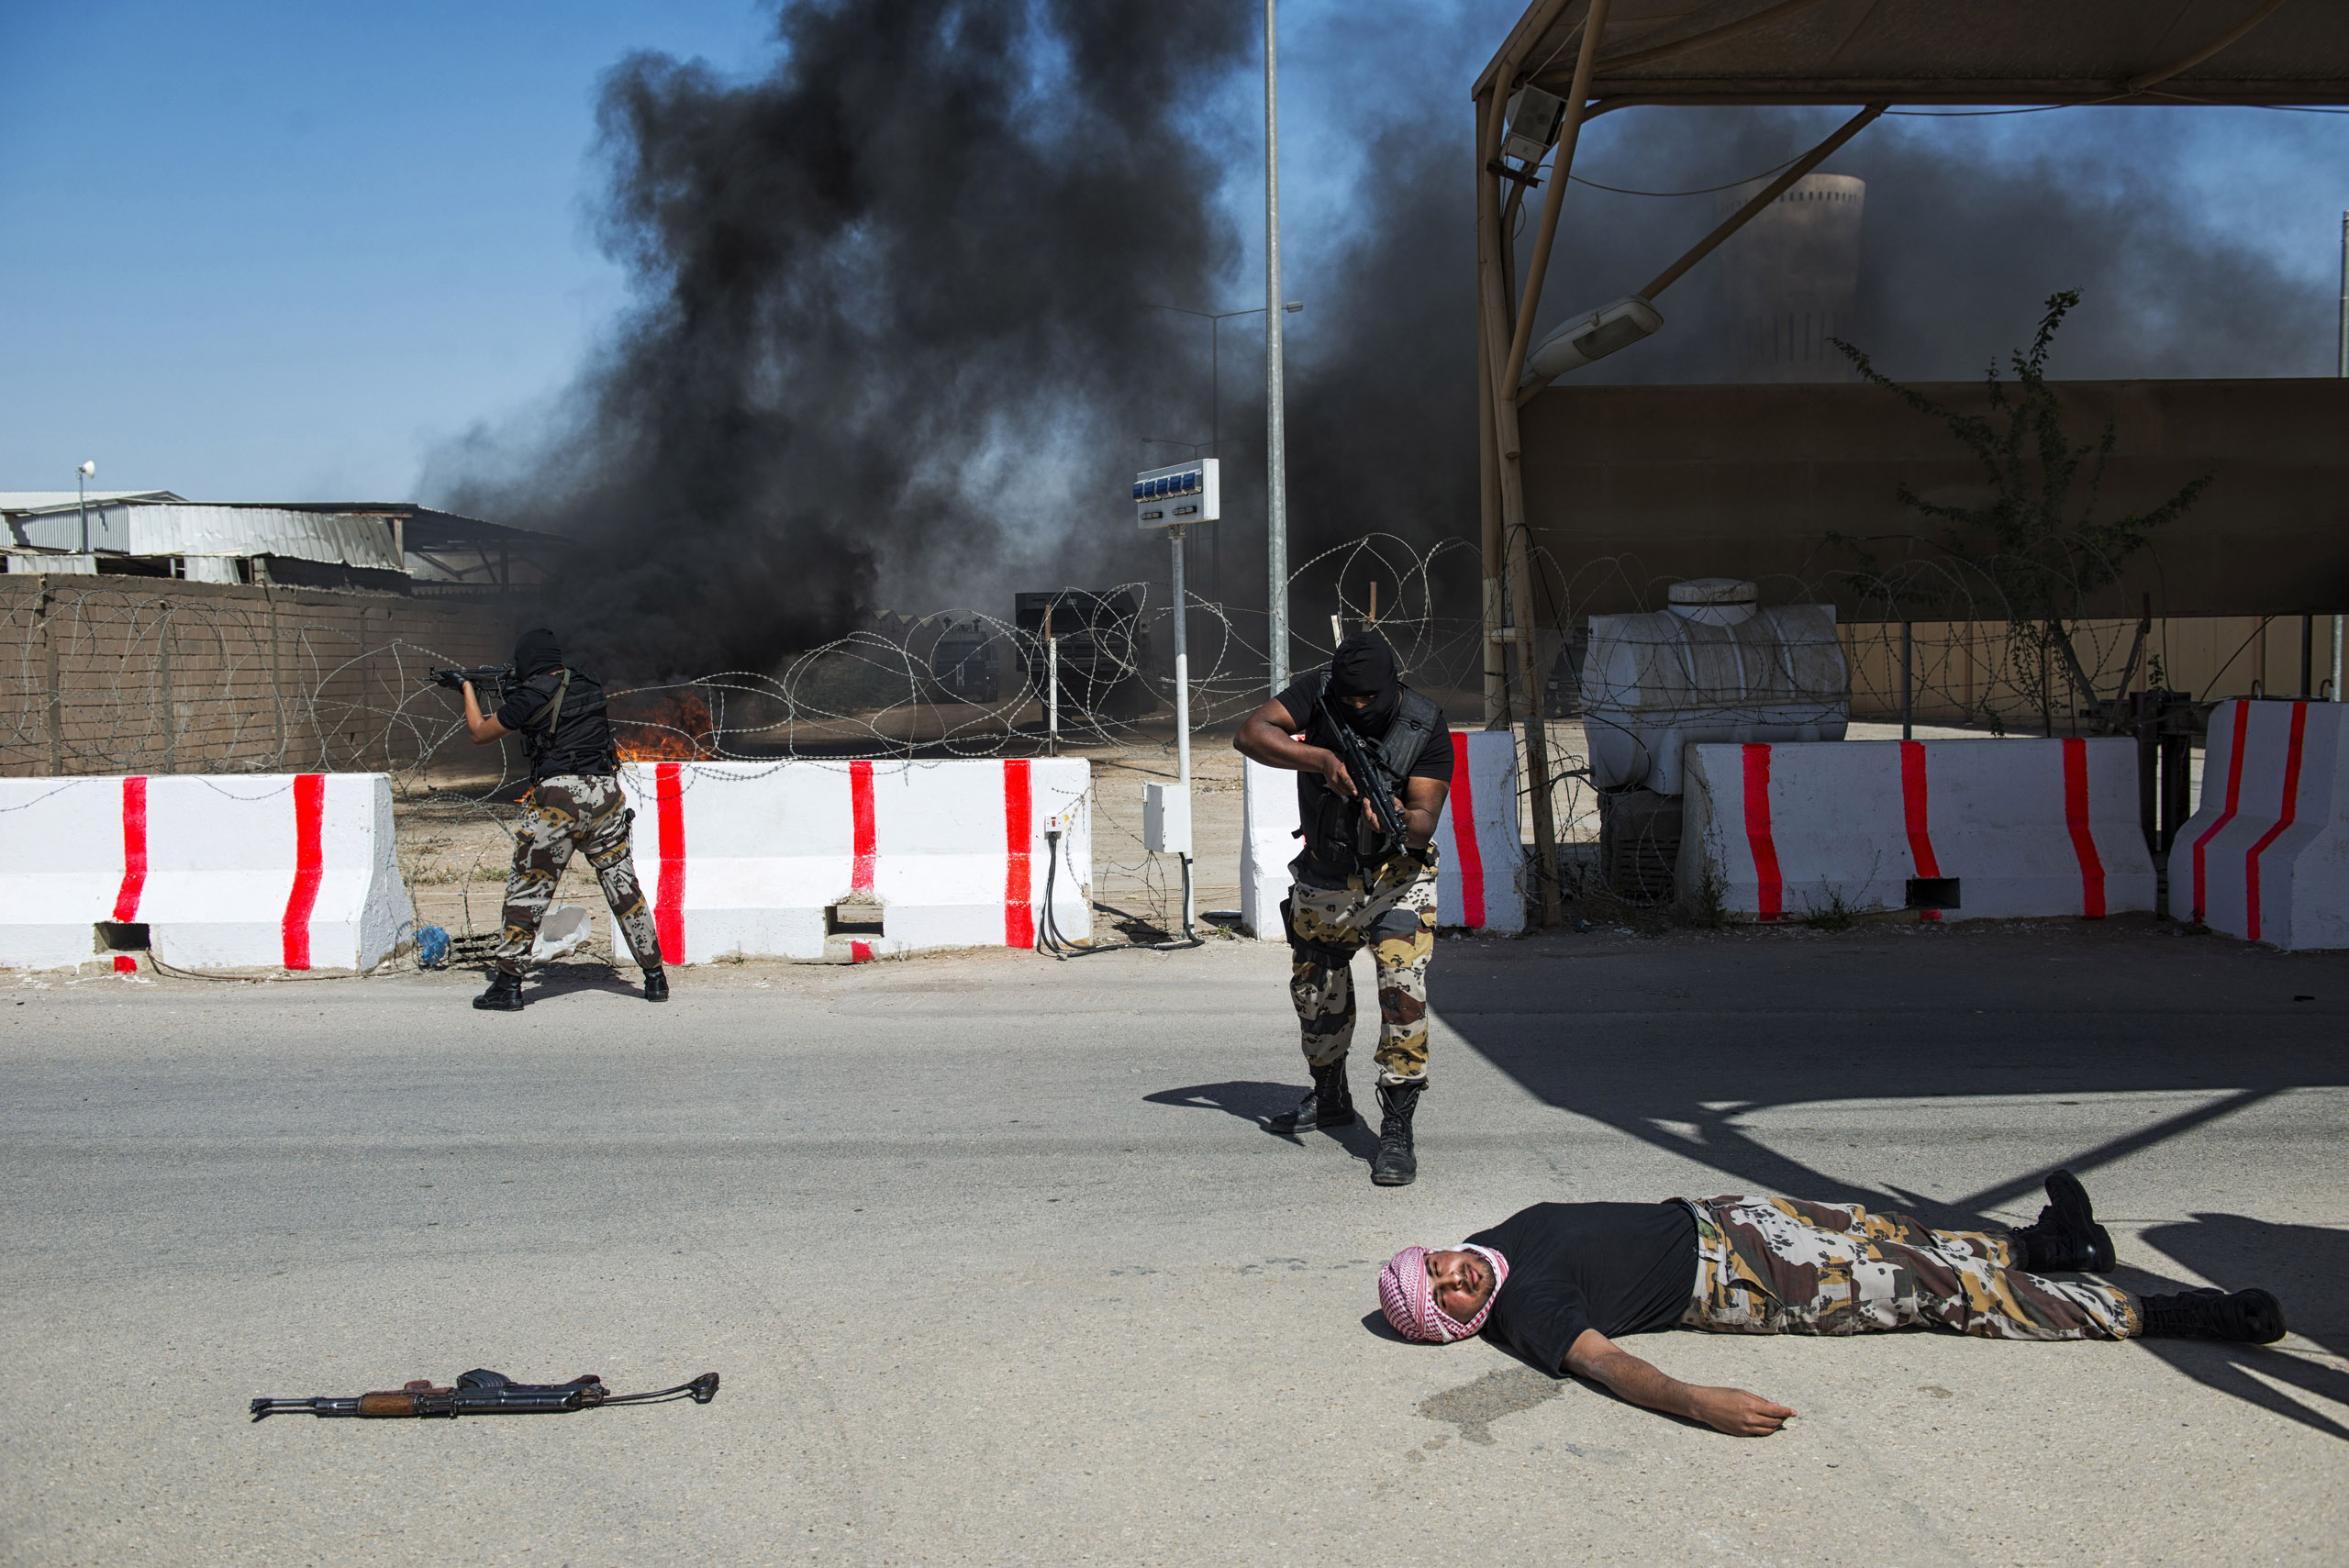 Troops with the Saudi Special Security Forces pretend to execute a terrorist during a simulated attack on a compound at the Counter-Terrorism Training School camp, March 5, 2013.